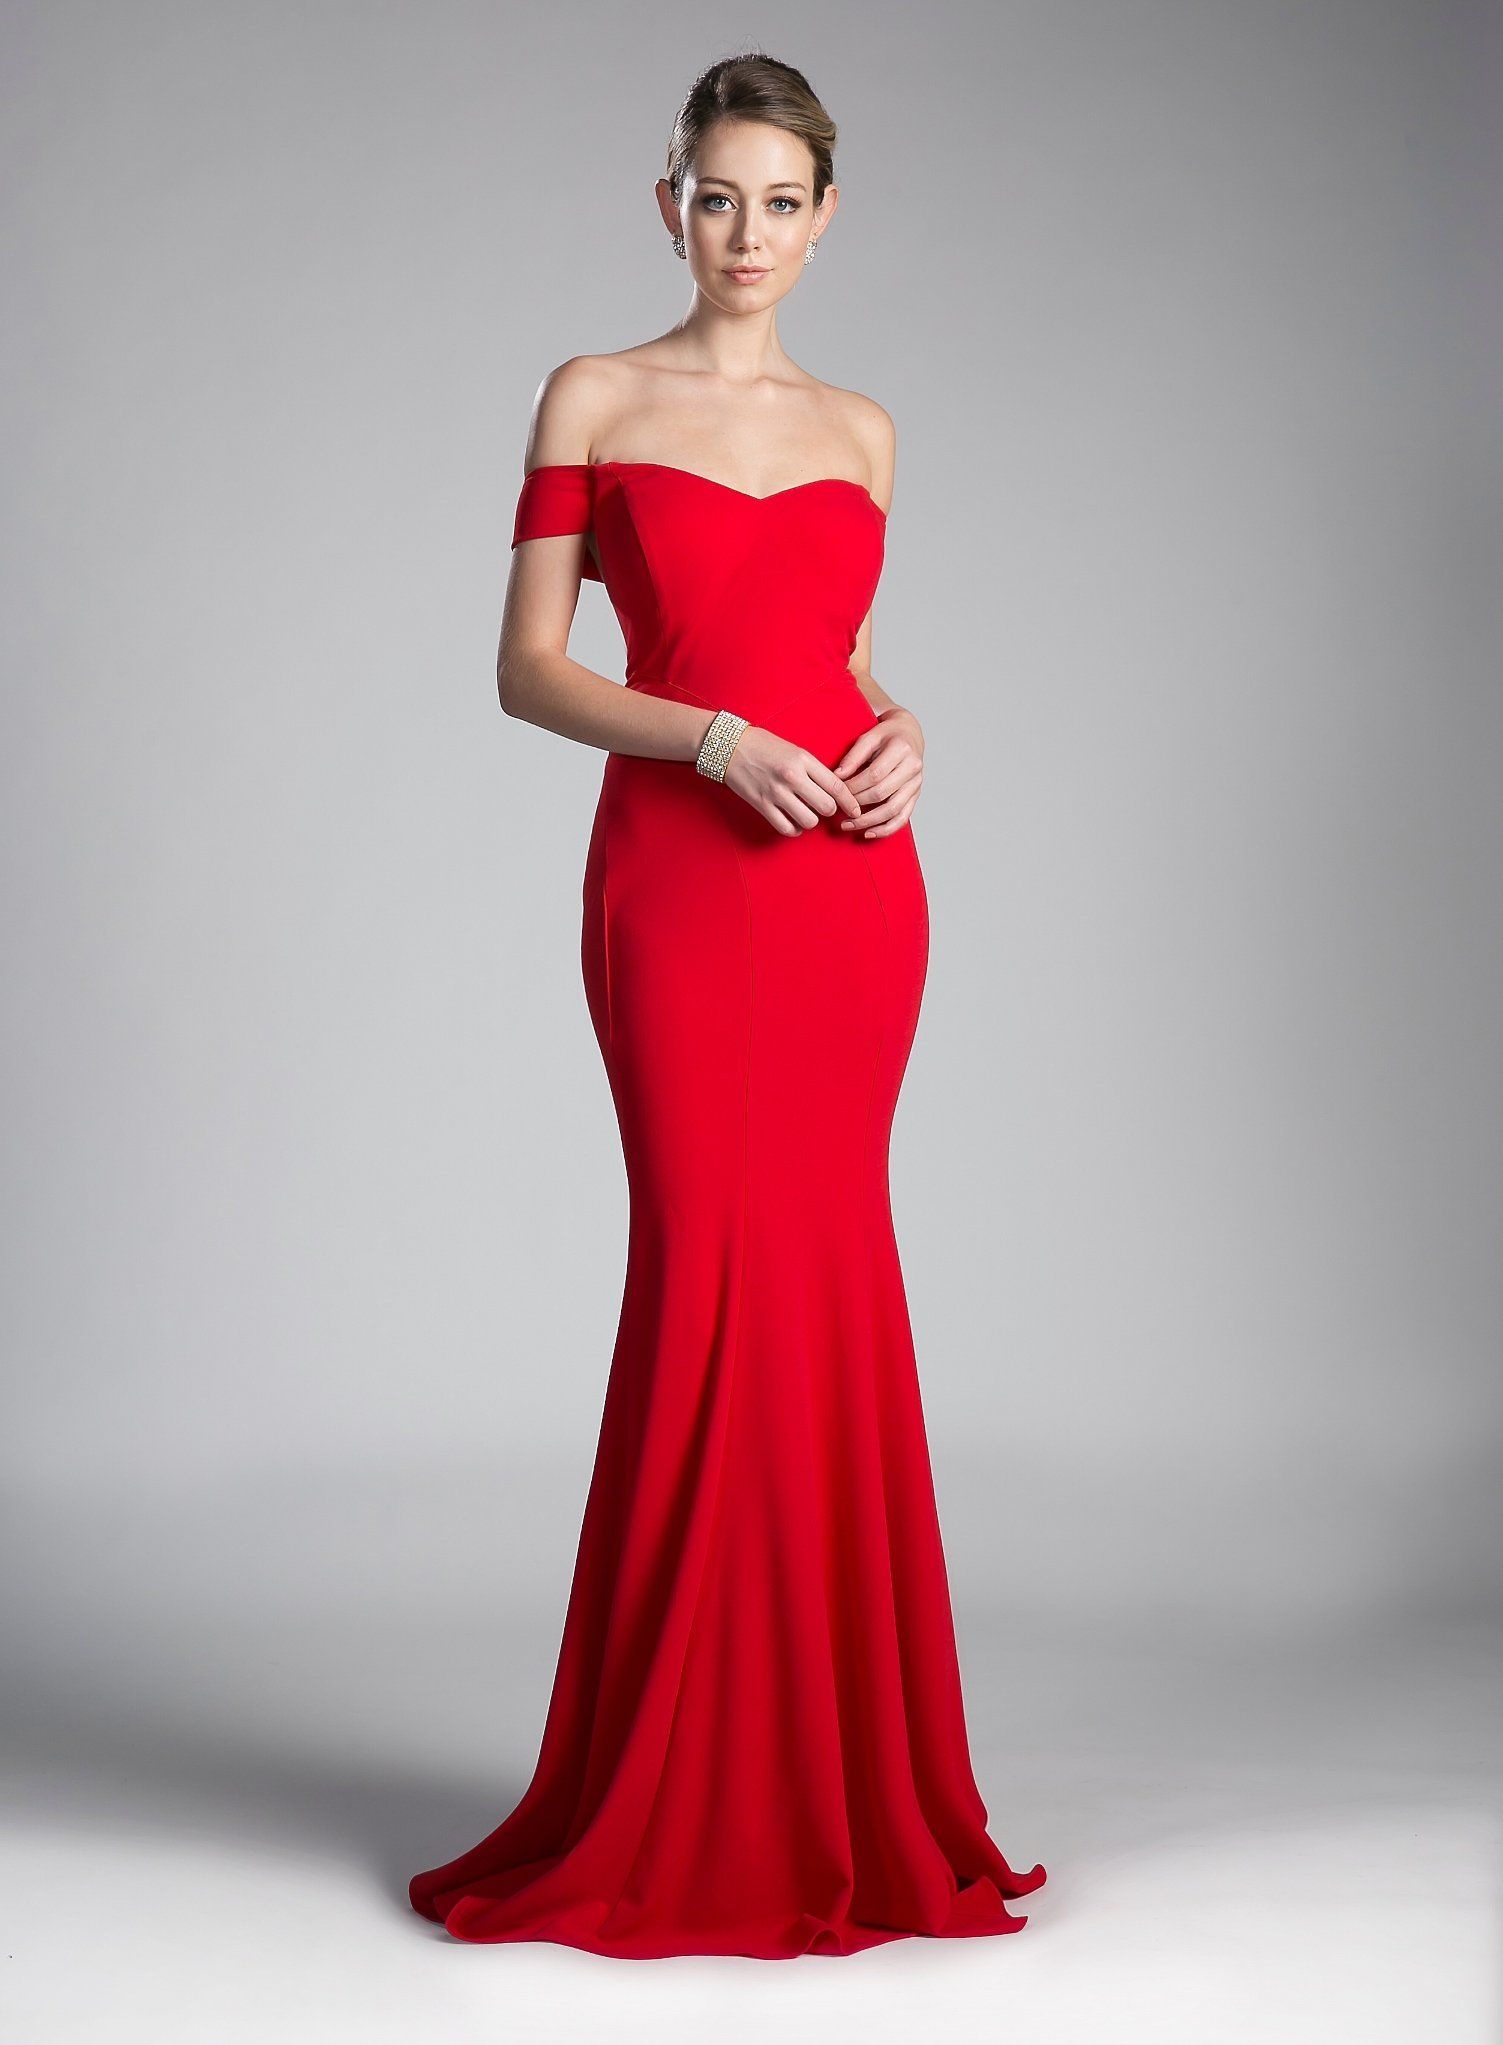 b169f2d2a43 Long Off the Shoulder Mermaid Dress by Cinderella Divine CD711 in ...